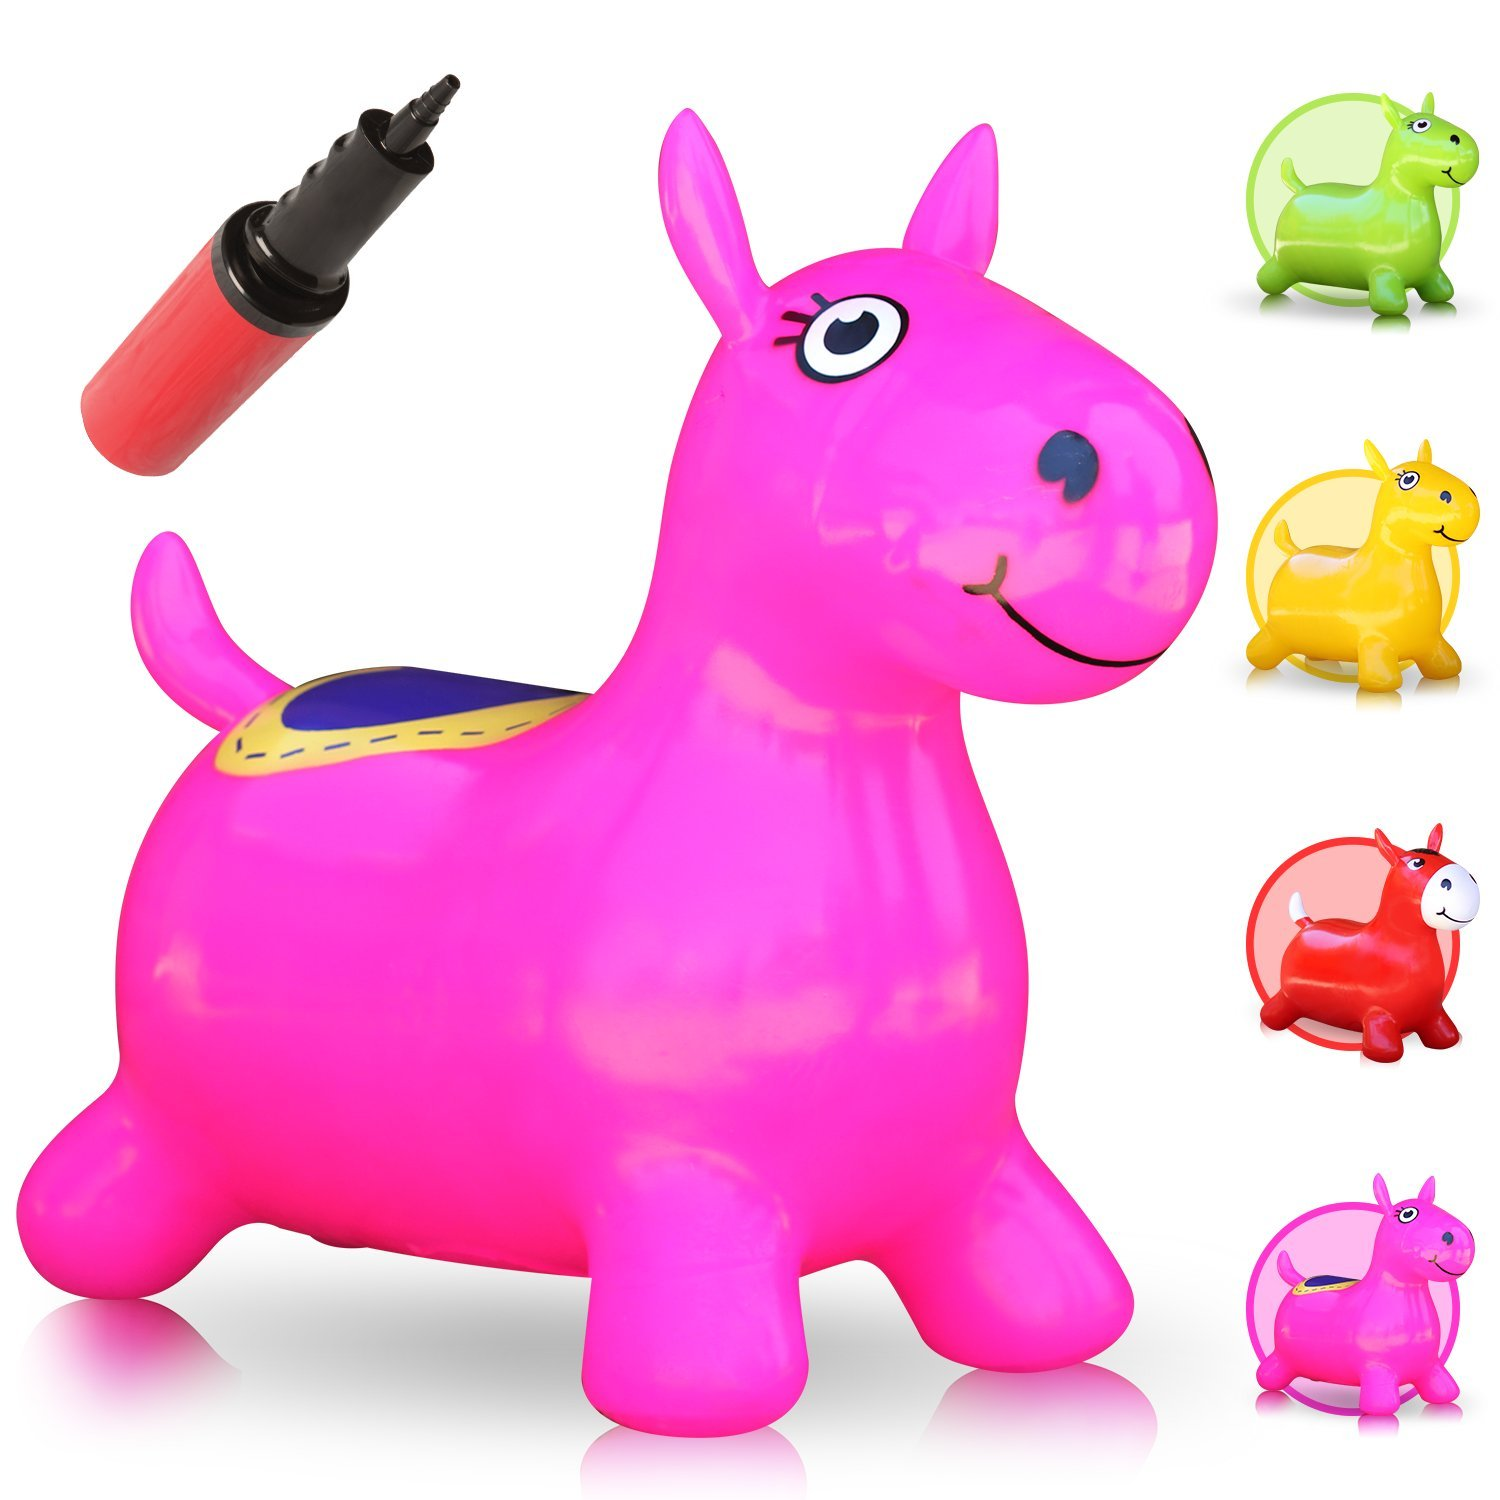 WALIKI Hopping Horse Hopper (Johnny the Bouncy Horse, ridding Horse for kids, pump included pink)